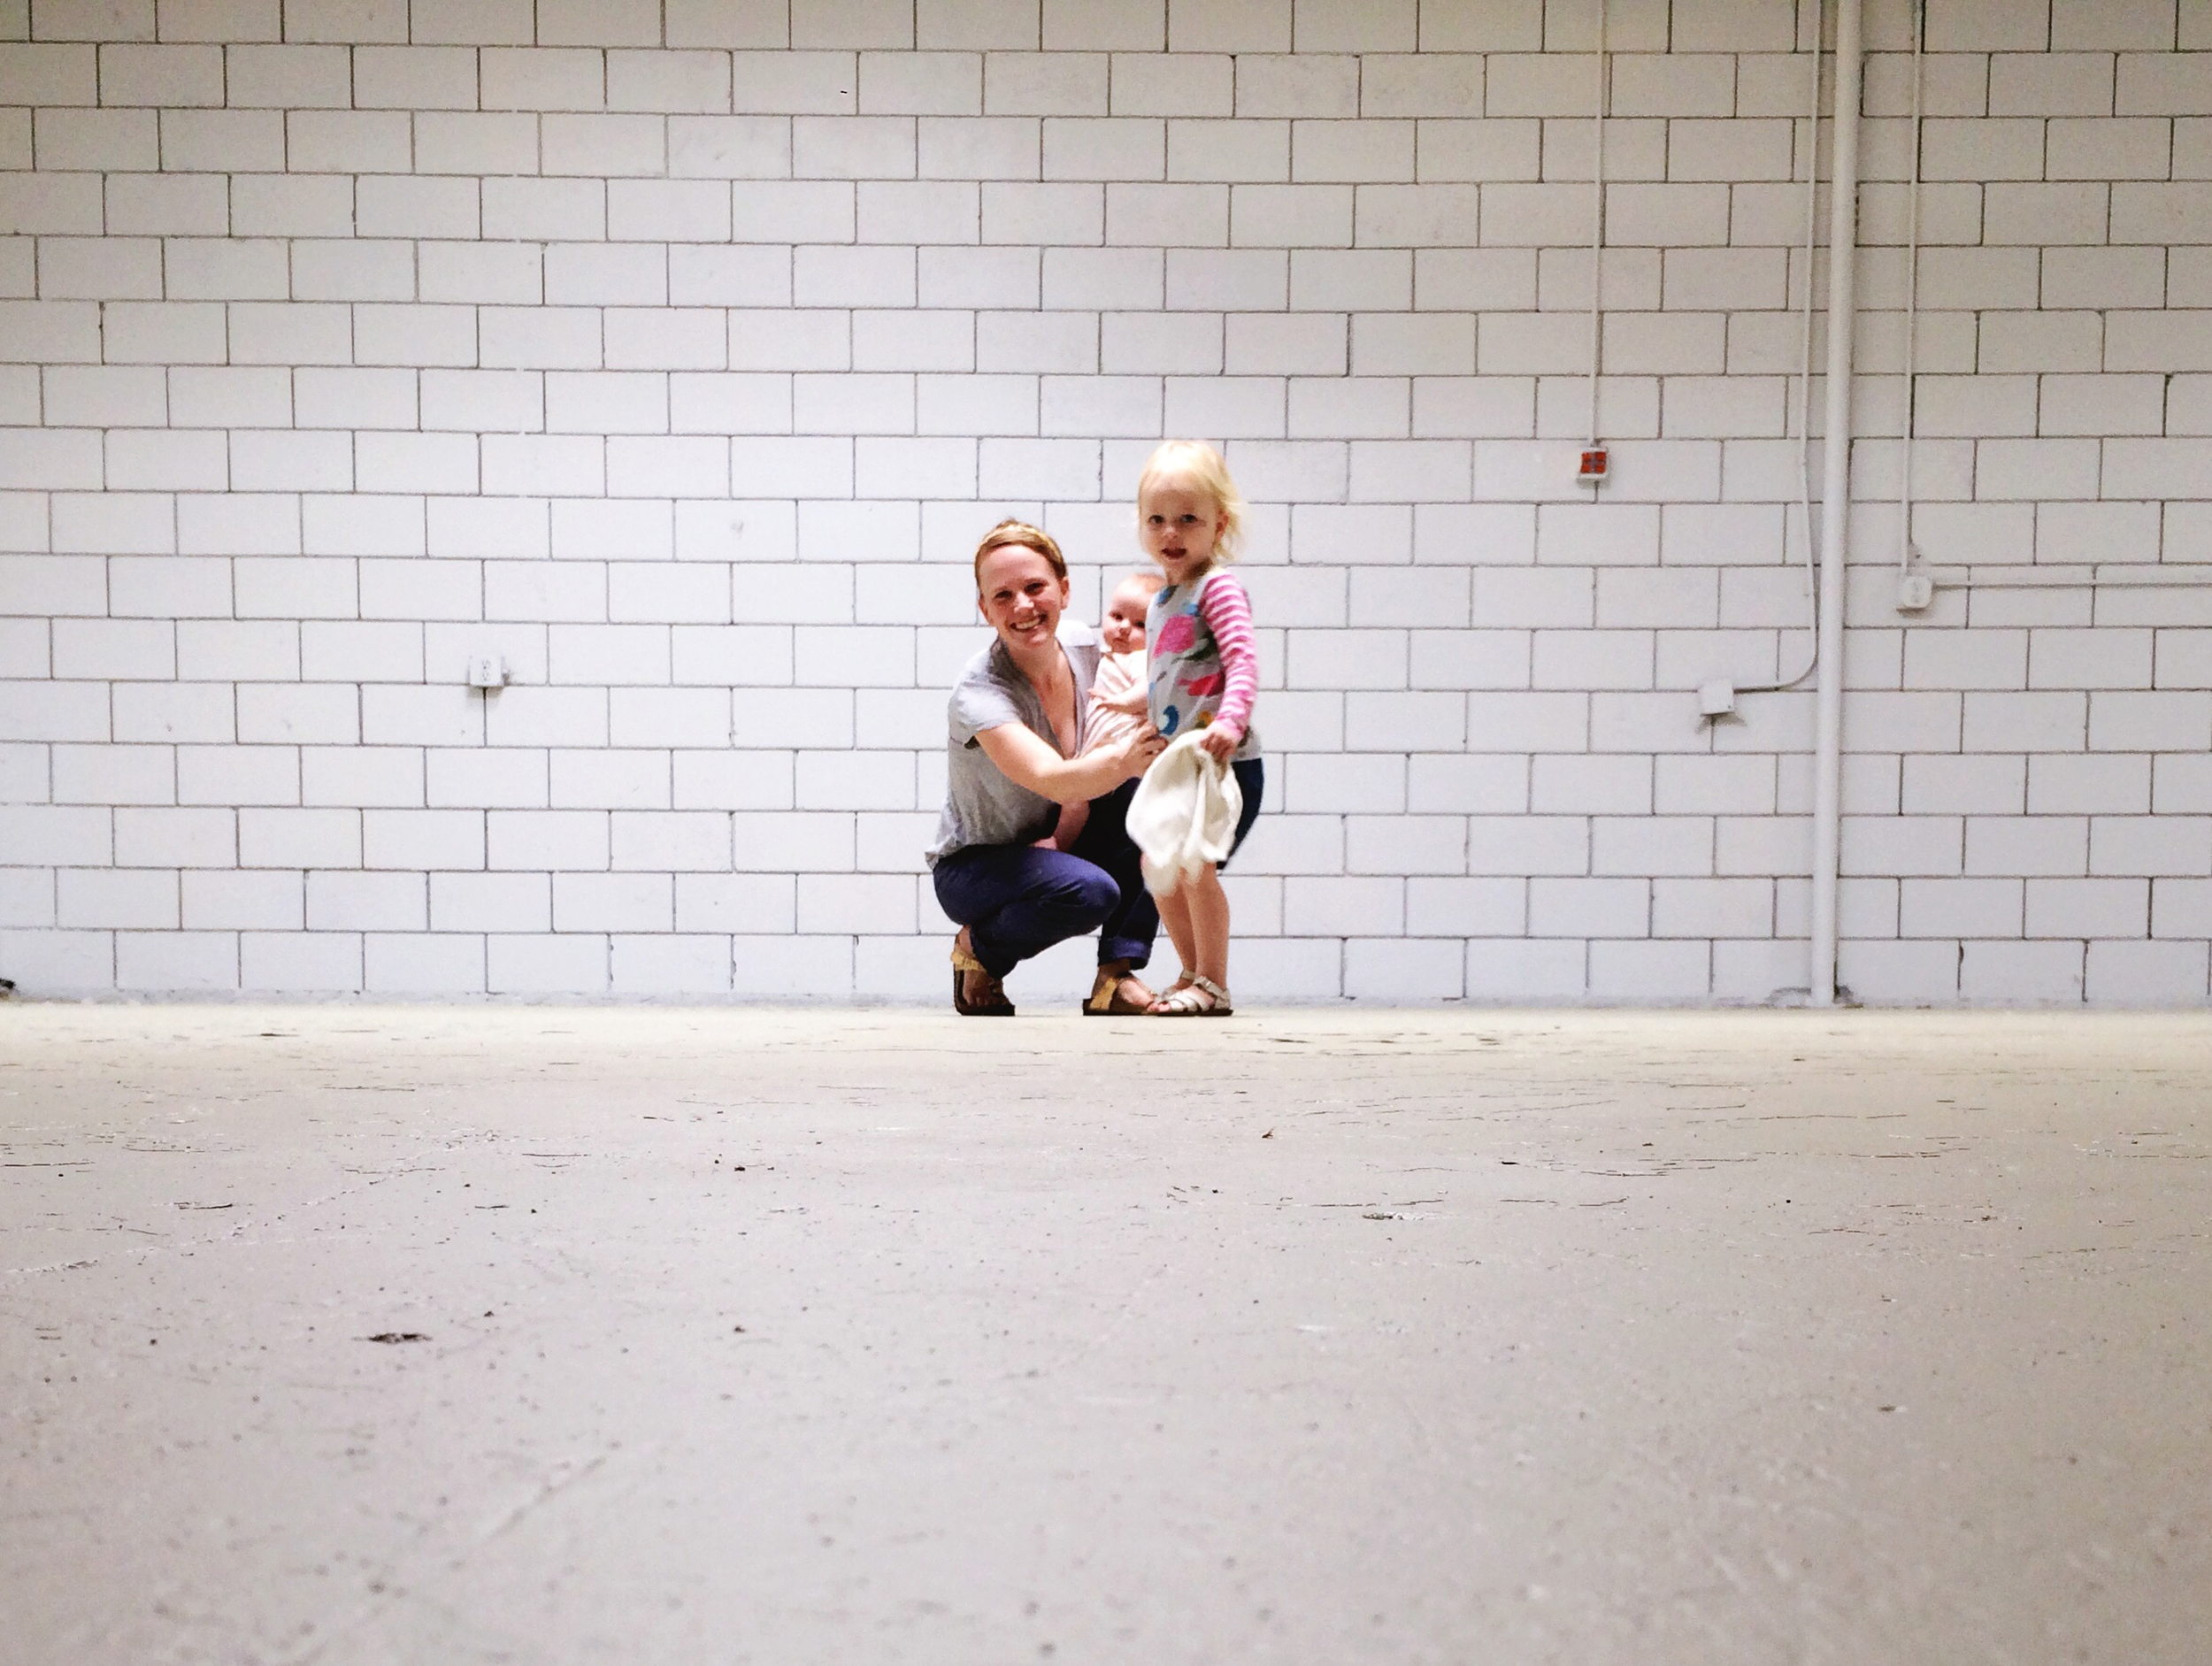 Elise and her daughters Ellerie and Piper in her new Get To Workbook warehouse space.